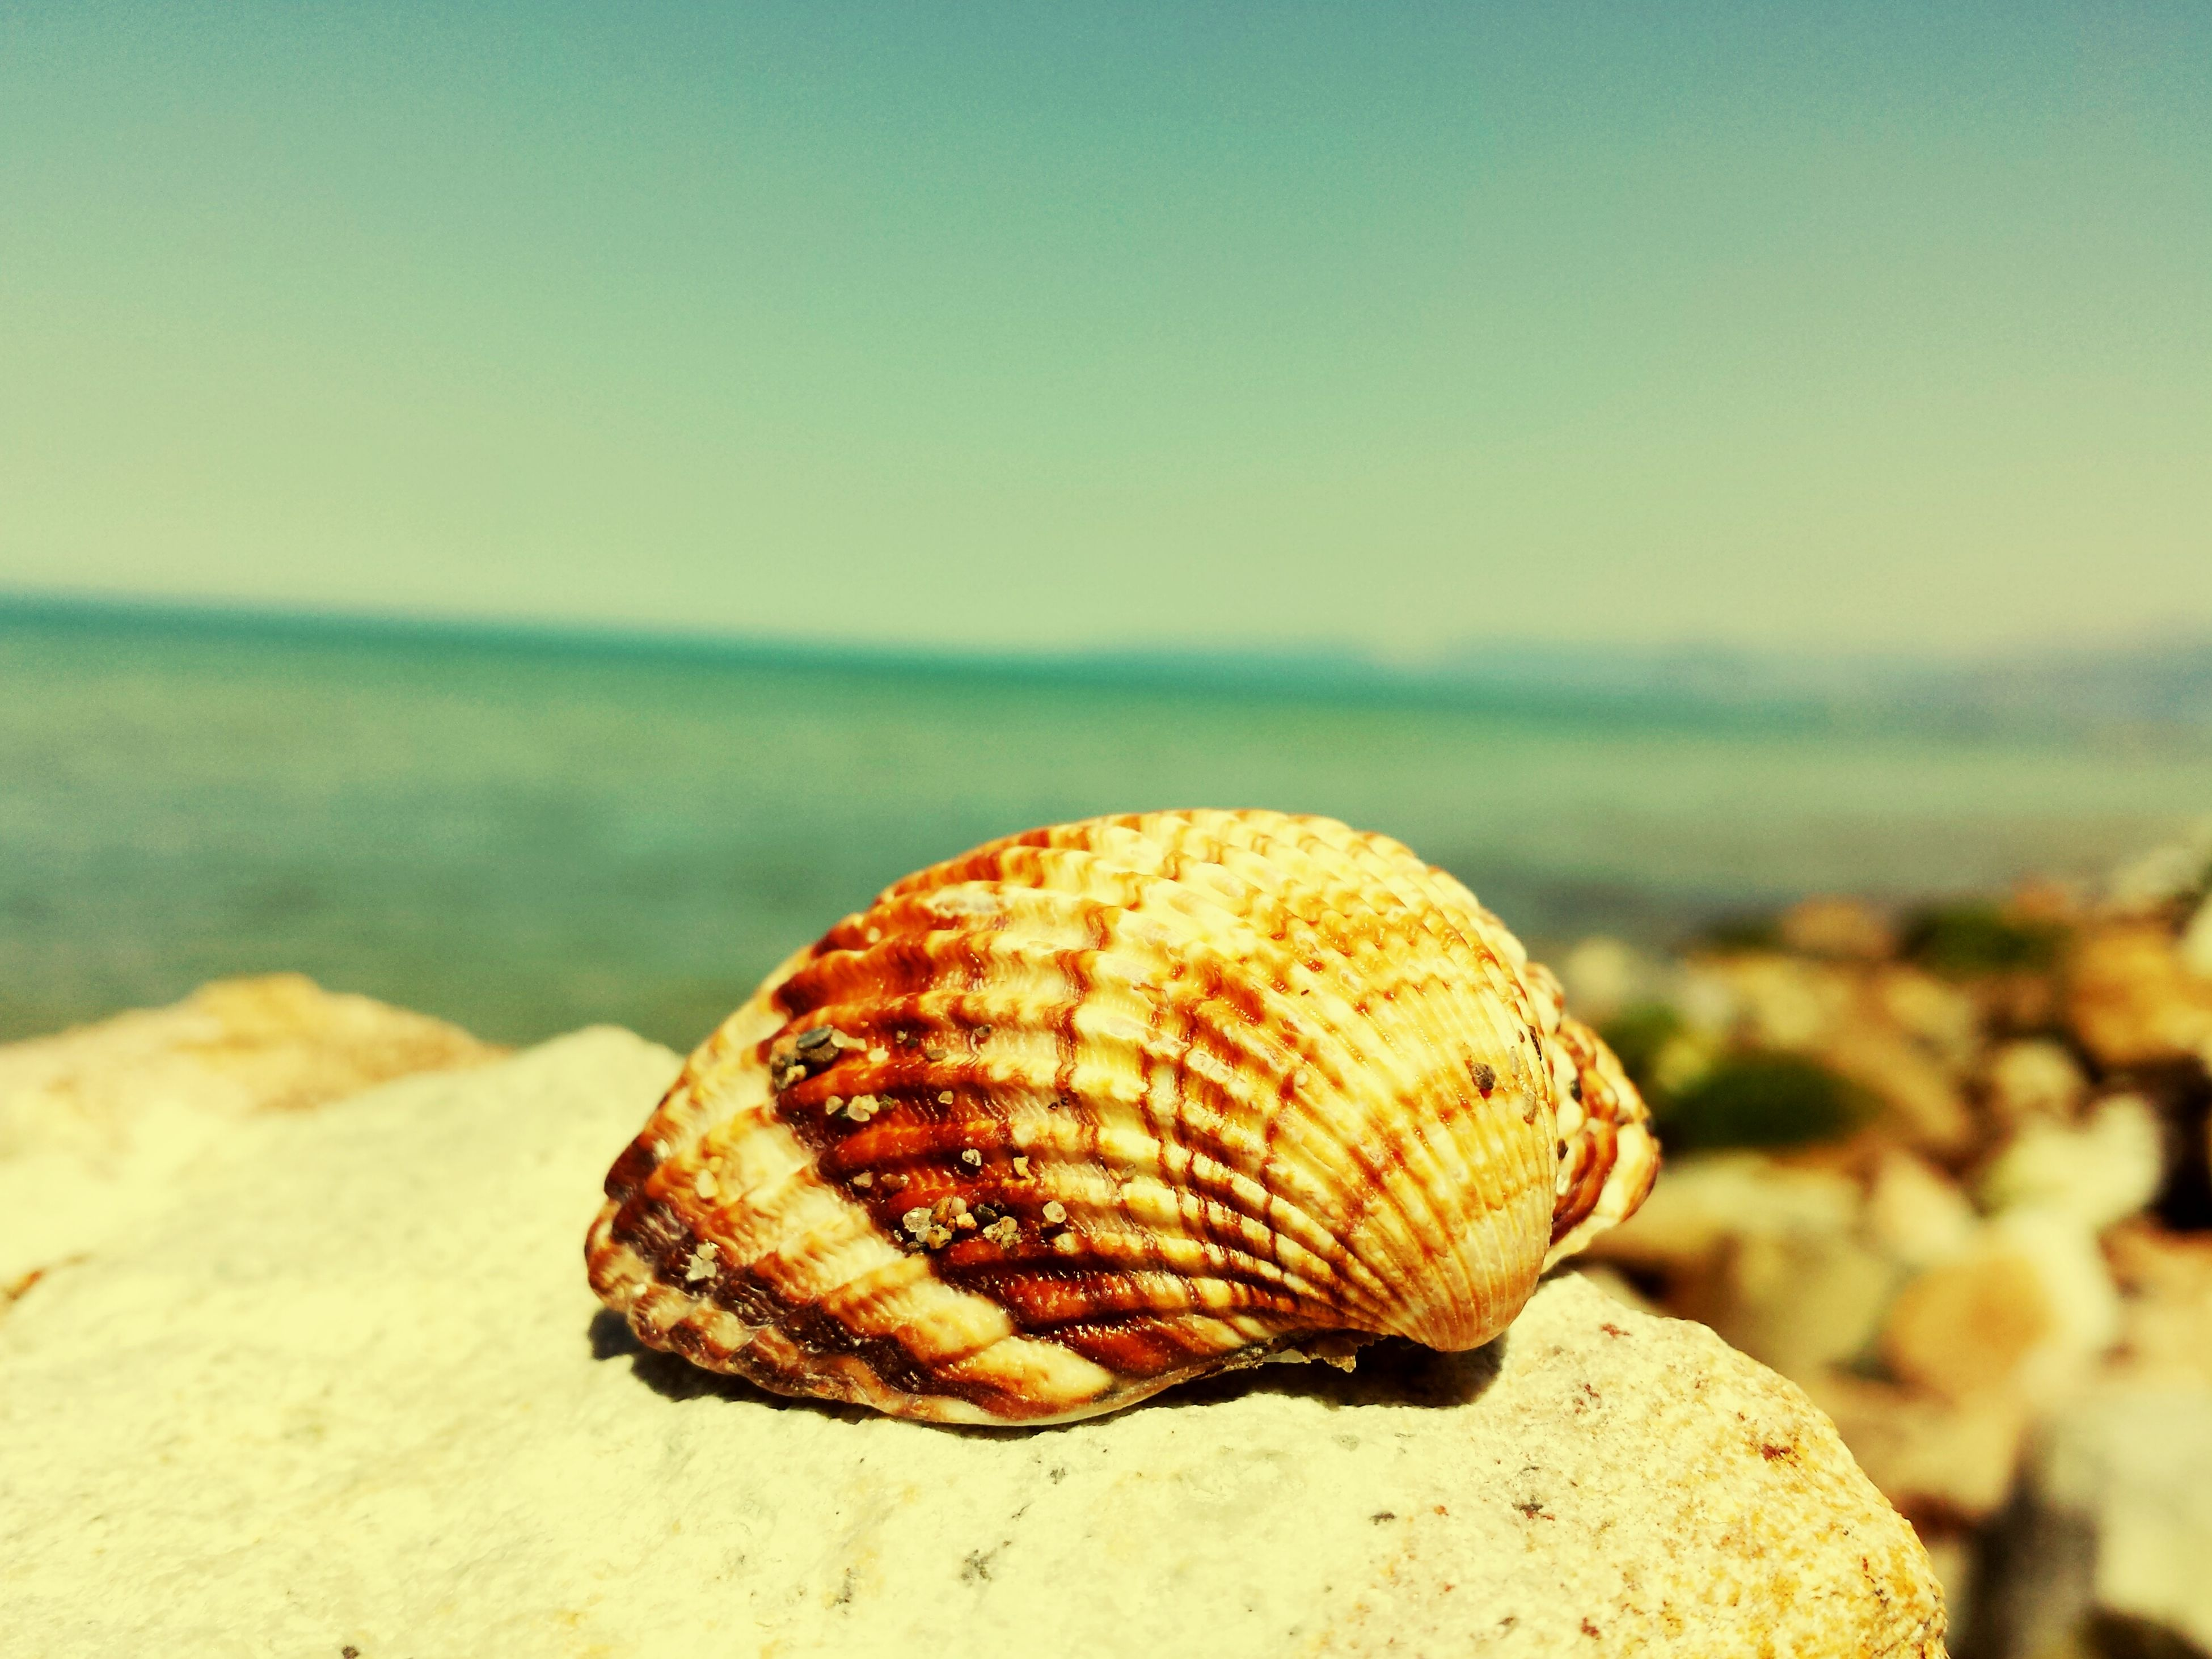 beach, sand, focus on foreground, animal shell, sea, close-up, seashell, single object, shore, shell, sunny, non-urban scene, outdoors, nature, tranquility, sky, tranquil scene, beauty in nature, vacations, no people, scenics